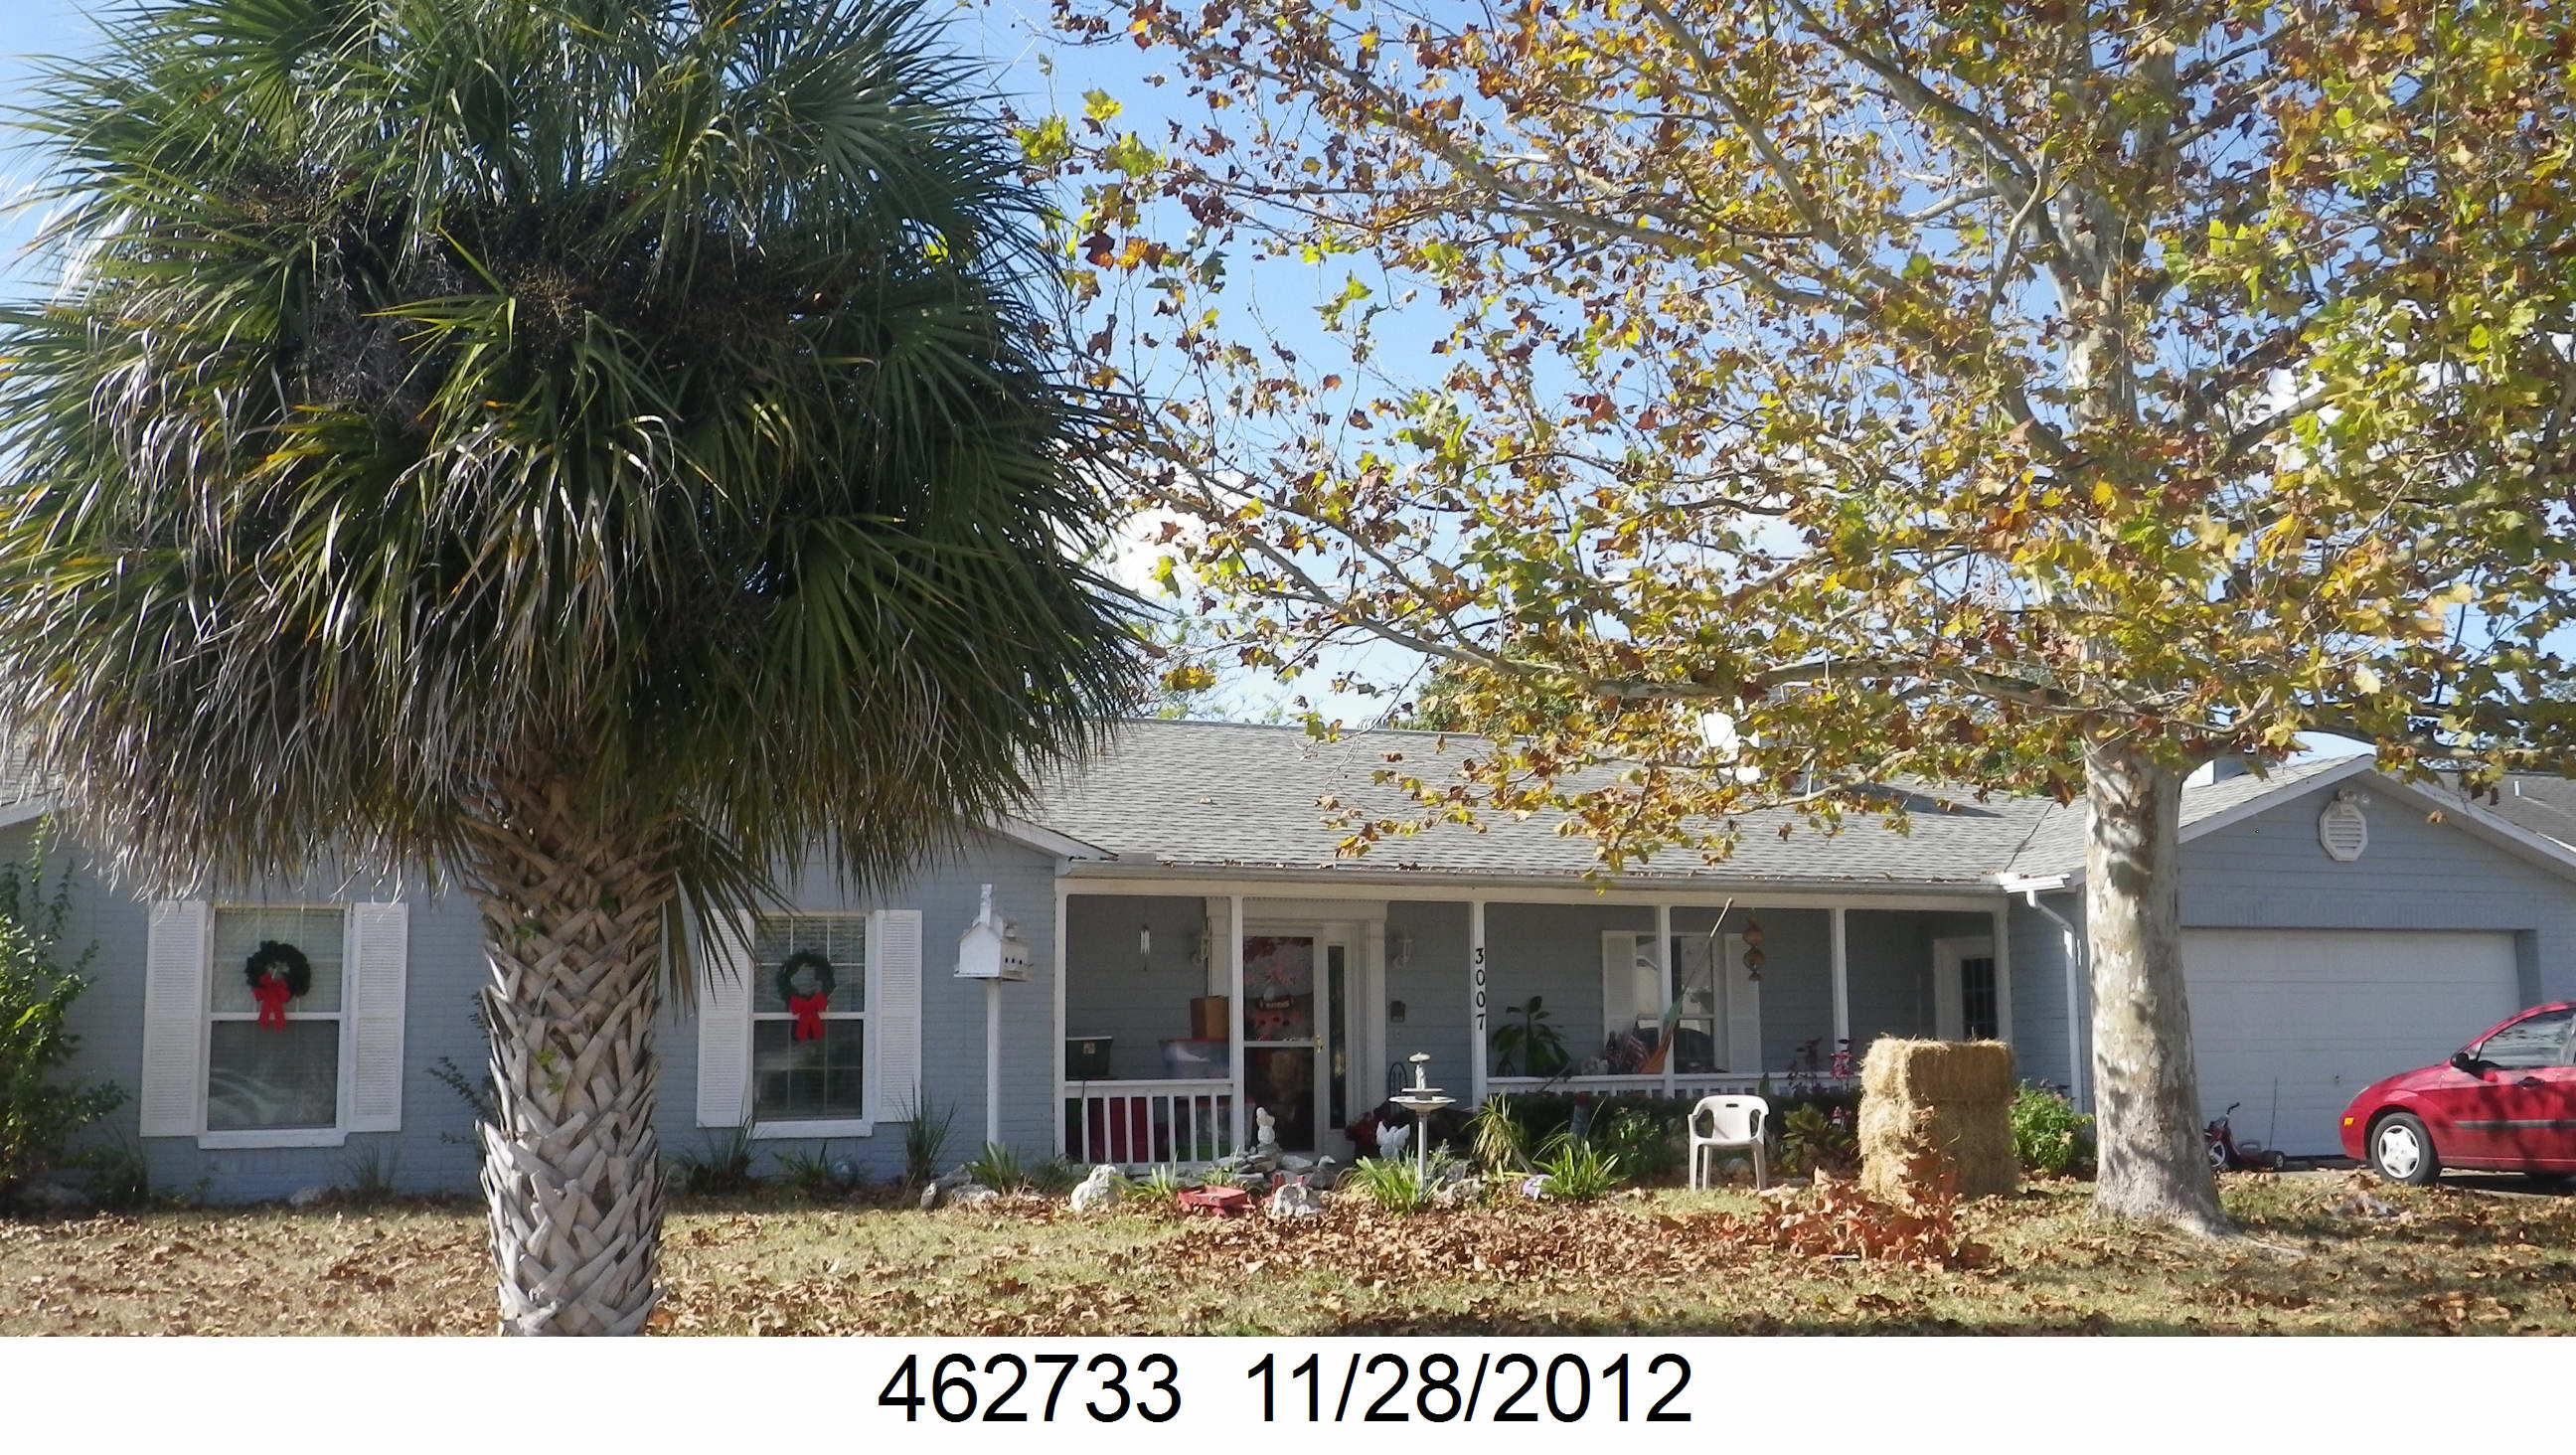 Spring Hill, Florida FL For Sale By Owner, Florida FSBO Home in Spring Hill FL, BAYSHORE DR